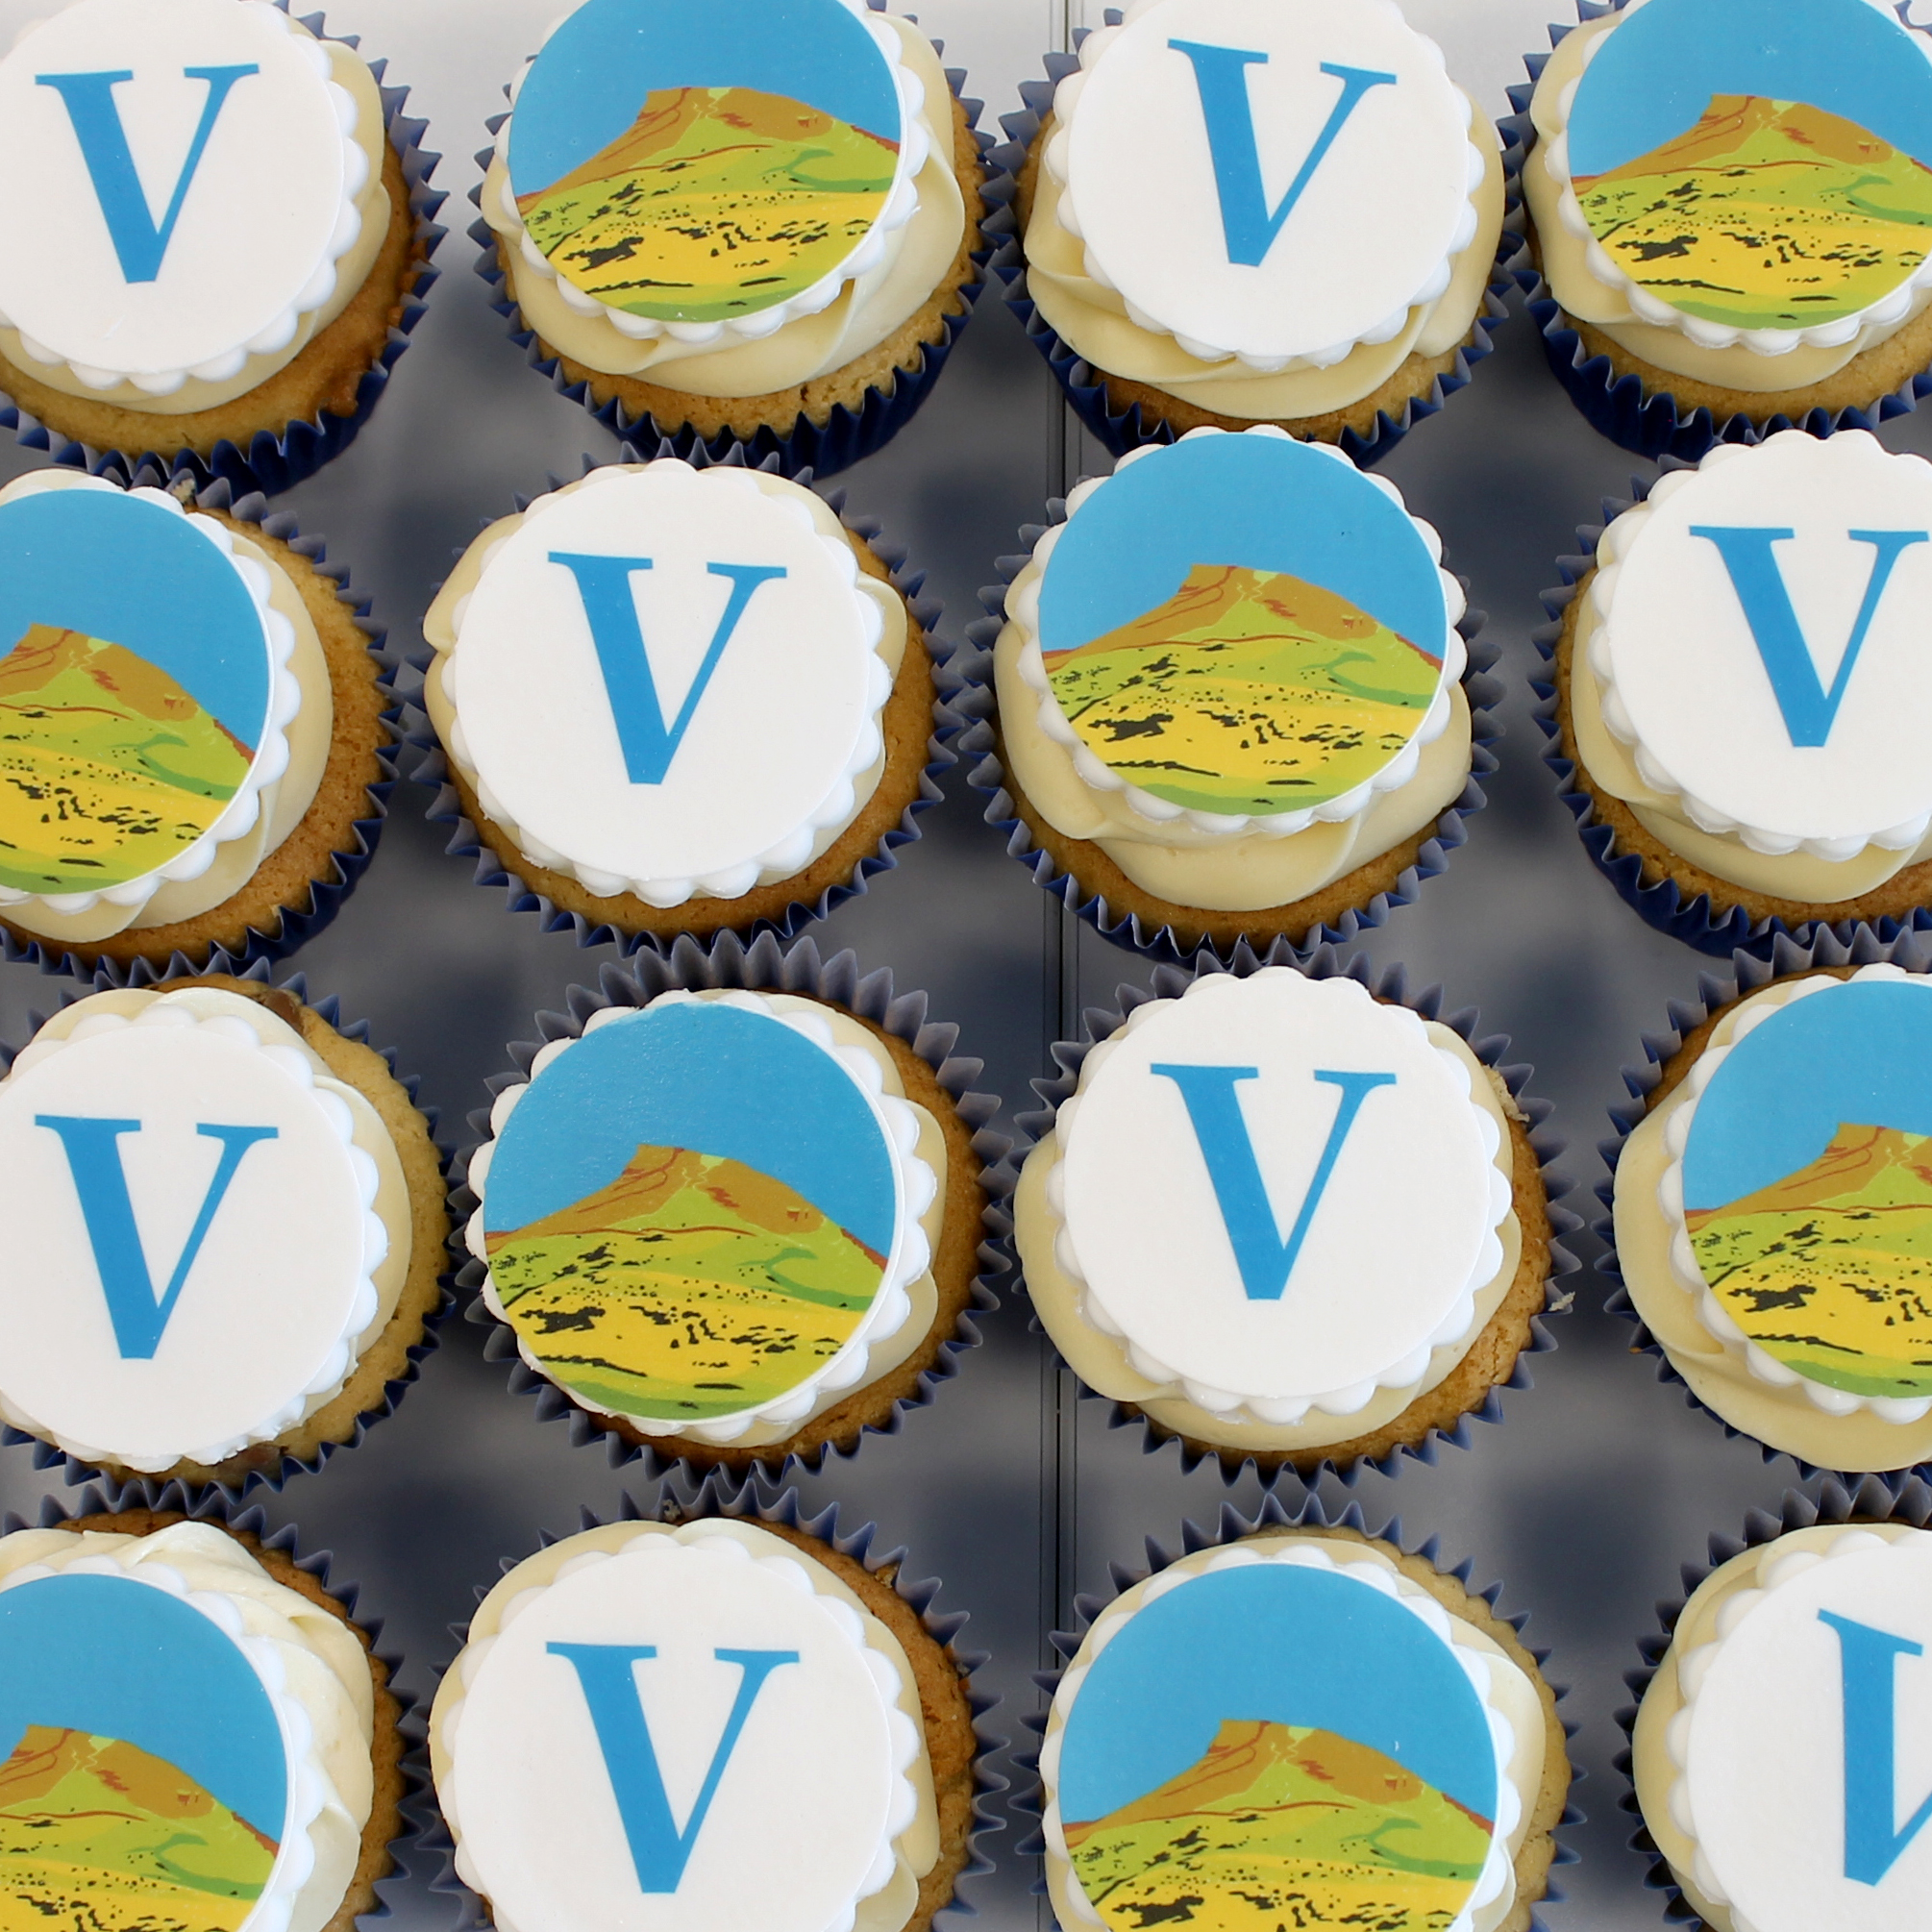 Vintage Chartered Financial Planners - Roseberry Topping Artwork by Abby Taylor - Cupcakes